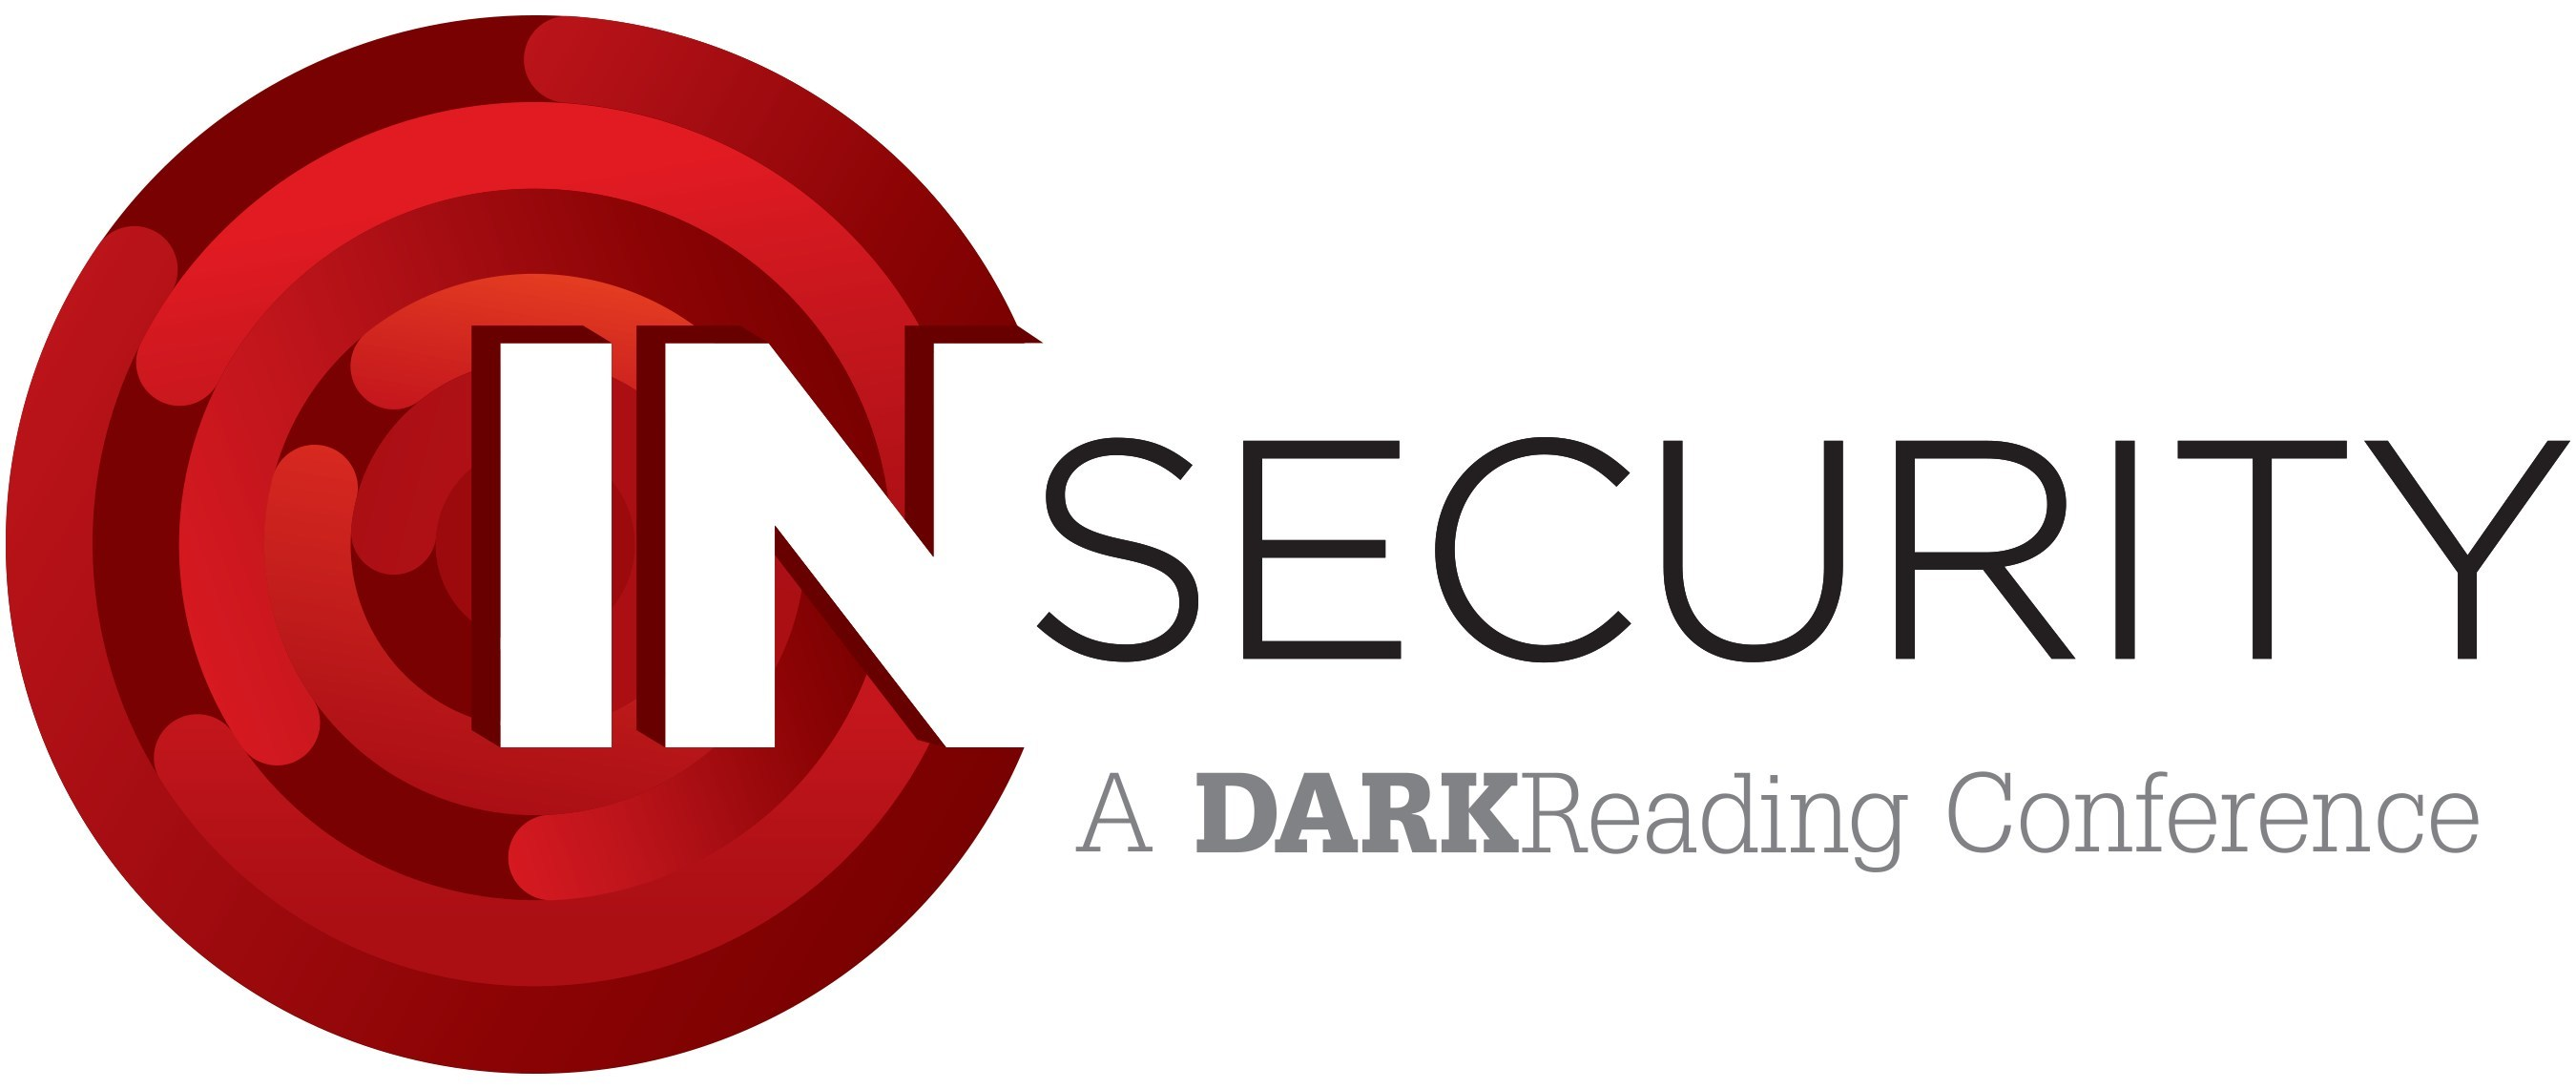 INsecurity Announces Robust Keynote Lineup featuring Former US Government CISO and Representatives from Sallie Mae, PSCU and More